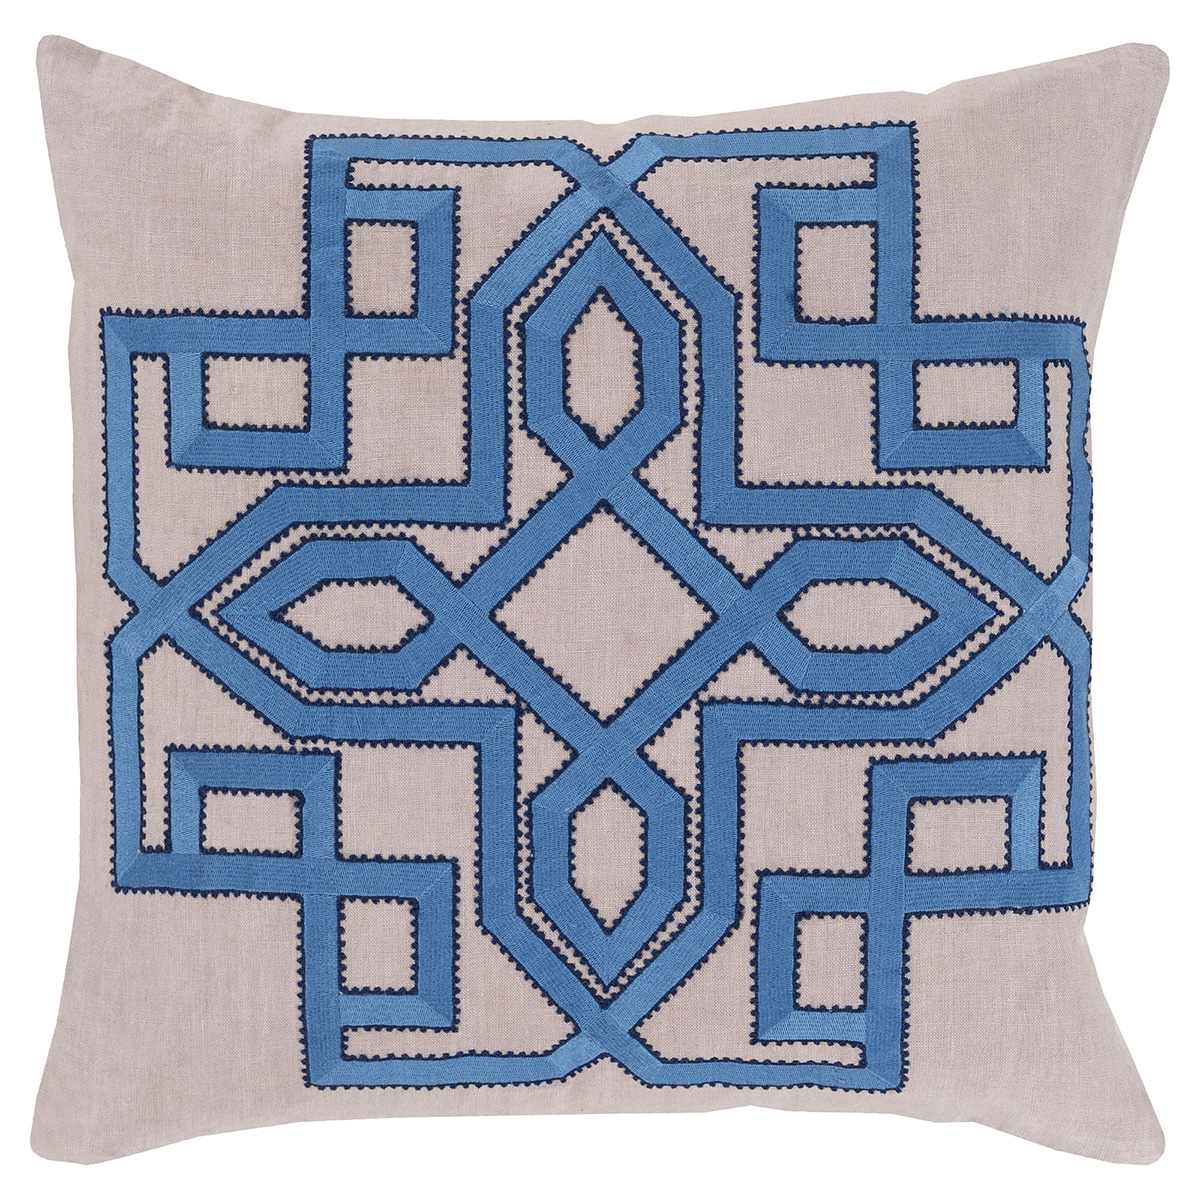 Nesbit Regency Sky Blue Medallion Beige Linen Pillow - 18x18